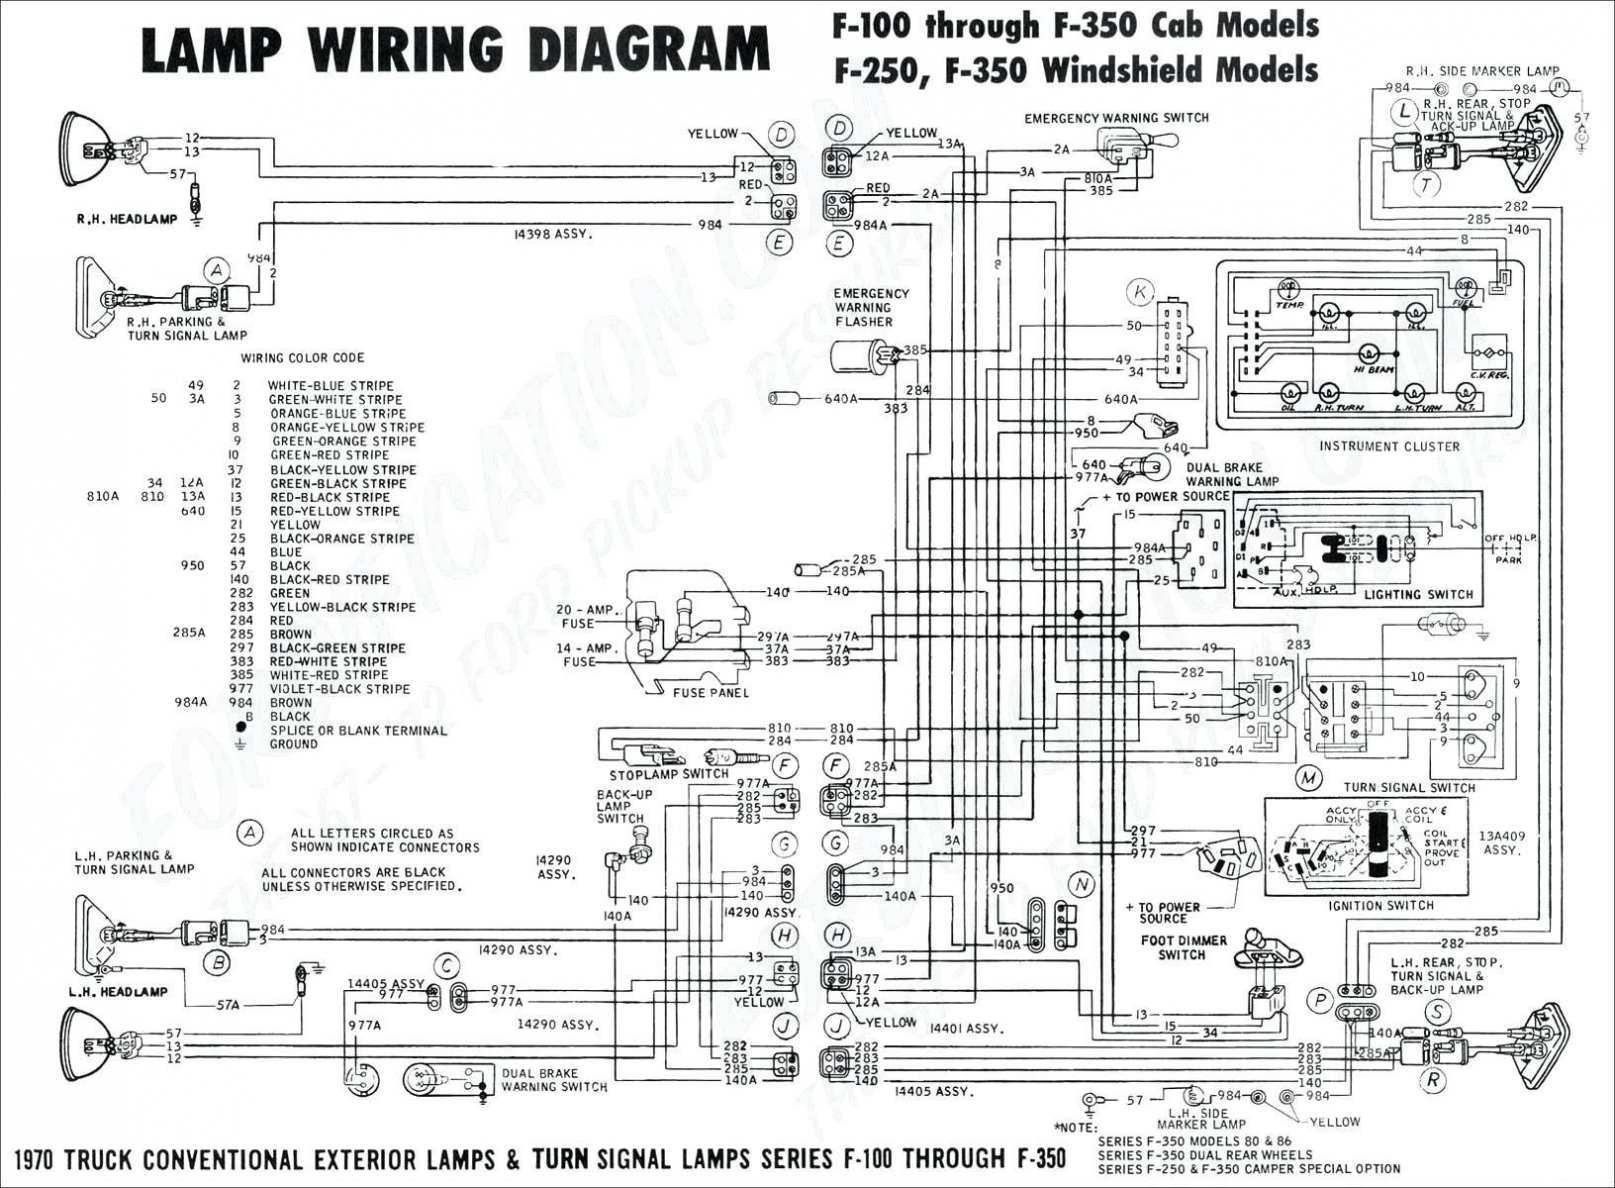 hight resolution of 2002 buick rendezvous fuse diagram moreover engine vacuum line1991 buick lesabre wiring diagram furthermore 1997 wiring